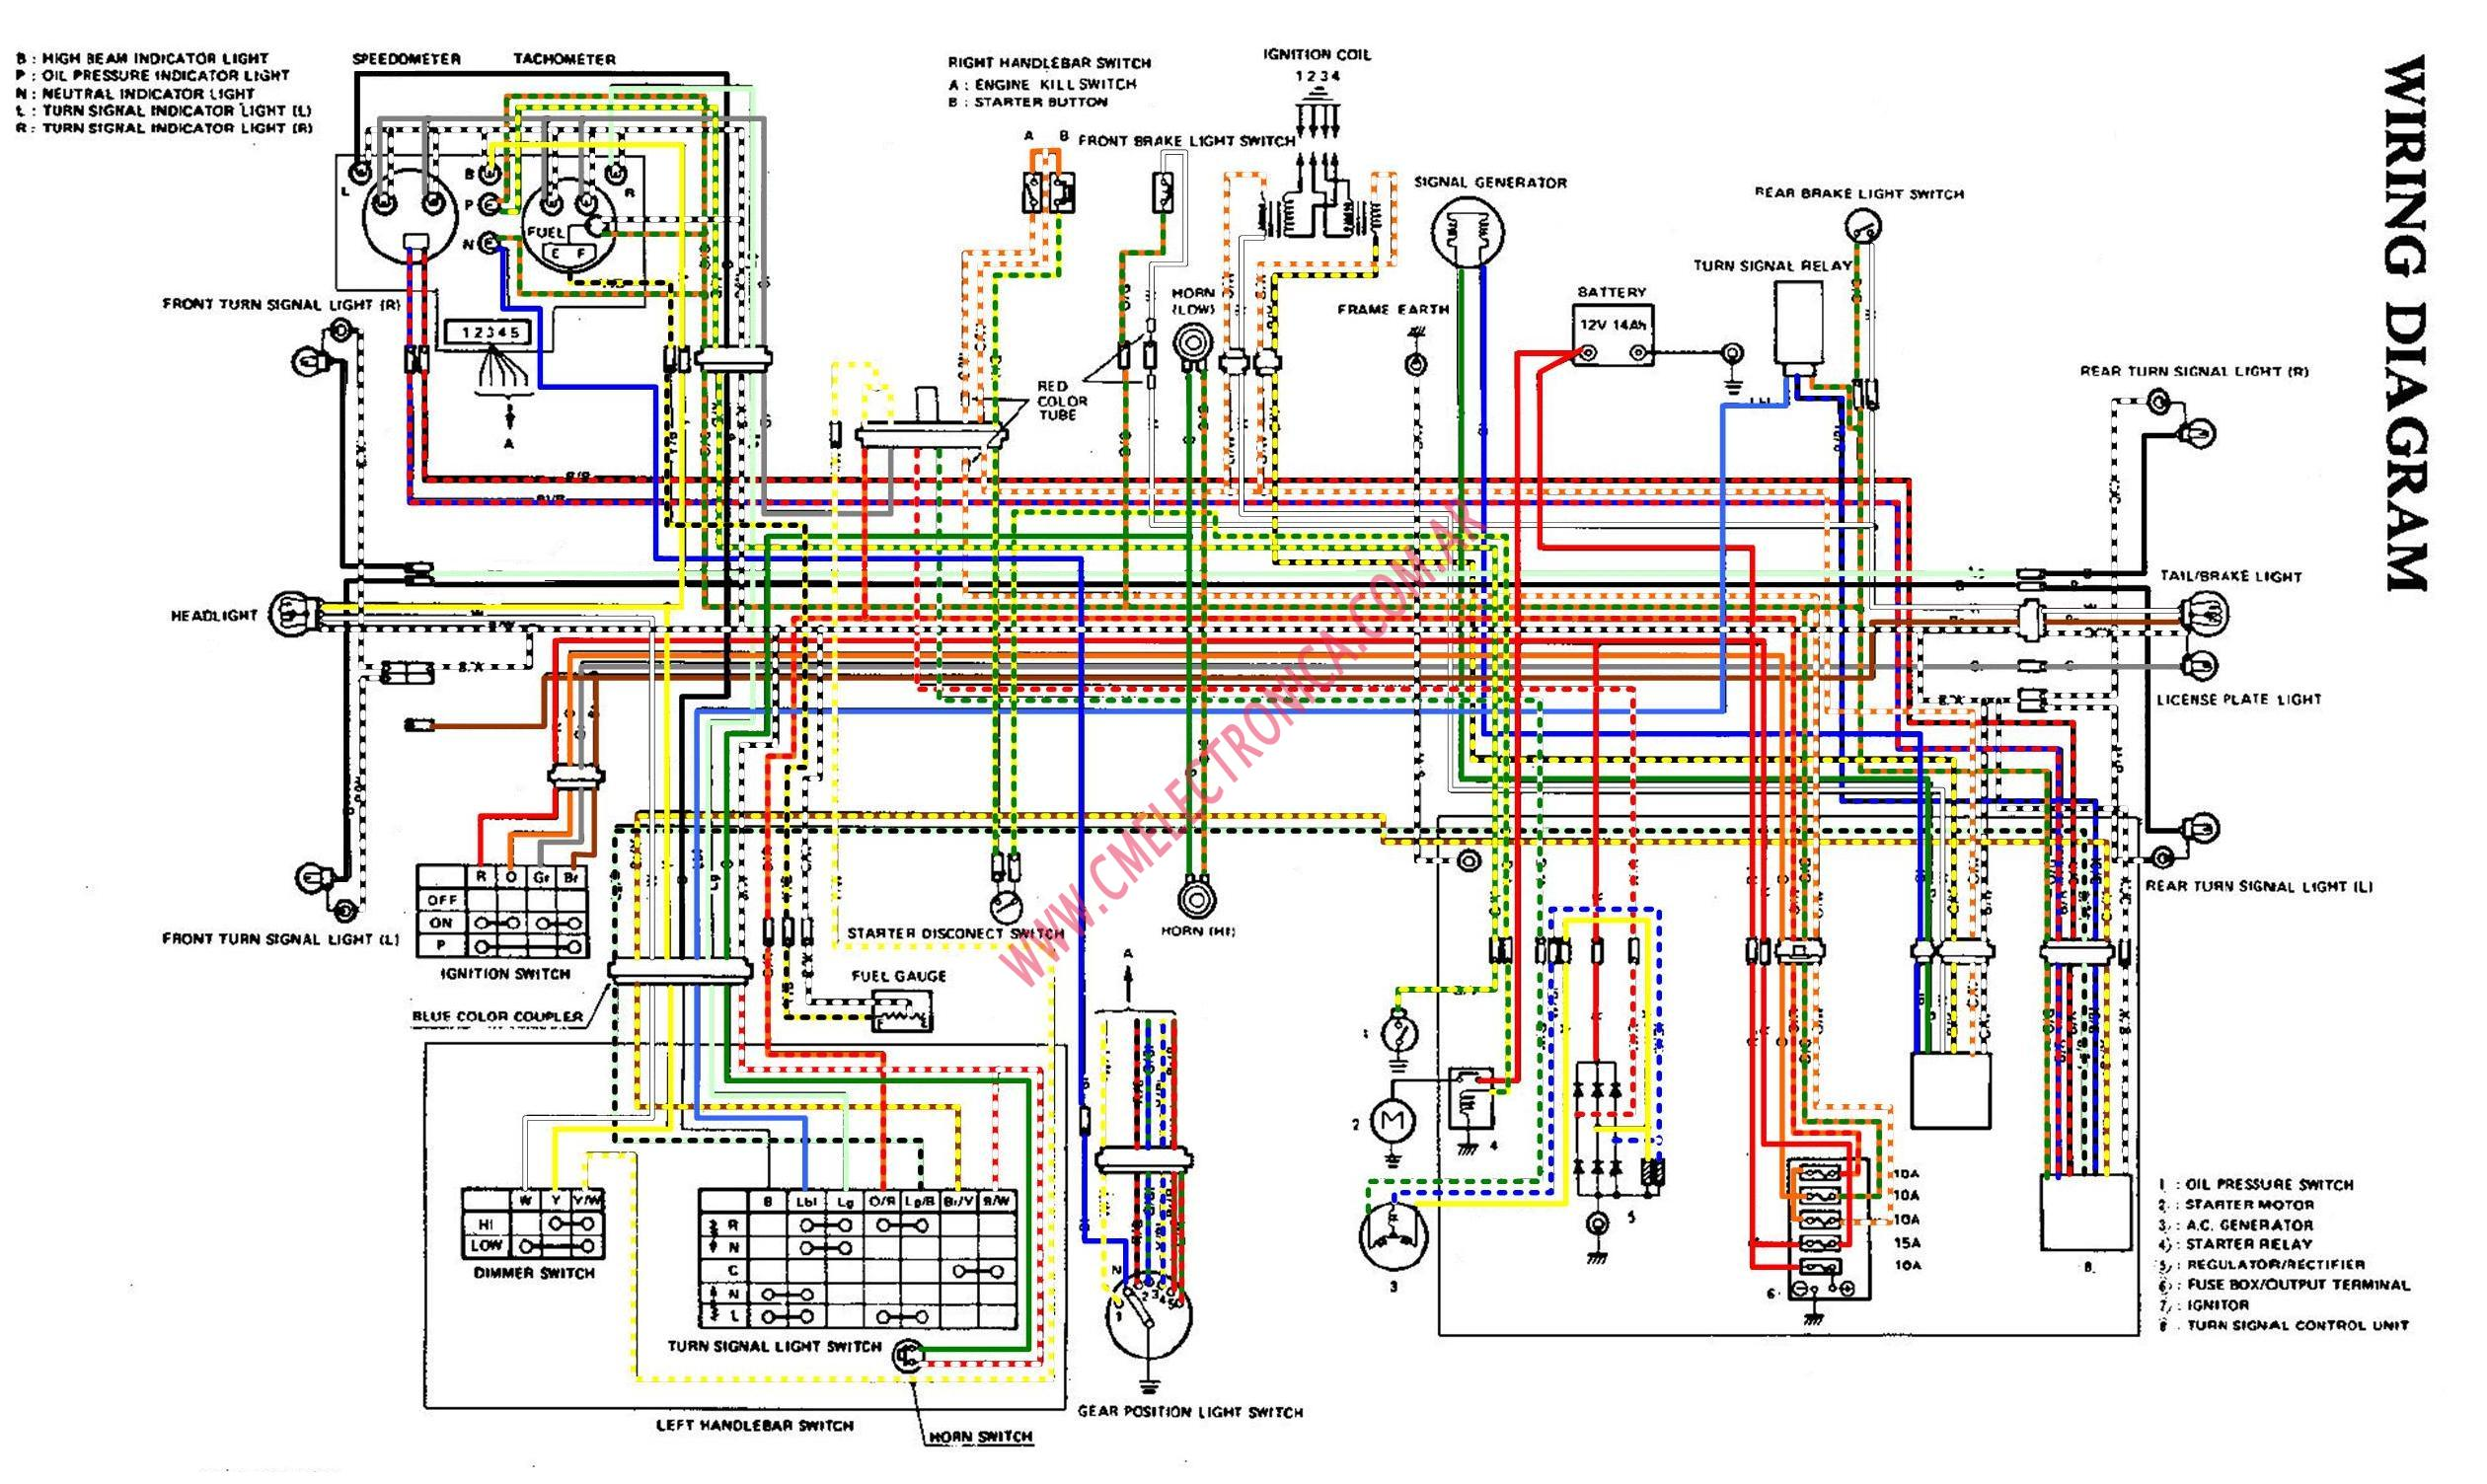 Yamaha Road Star Wiring Diagram Content Resource Of Tt500 Suzuki Gsxr 600 1993 The 1999 2000